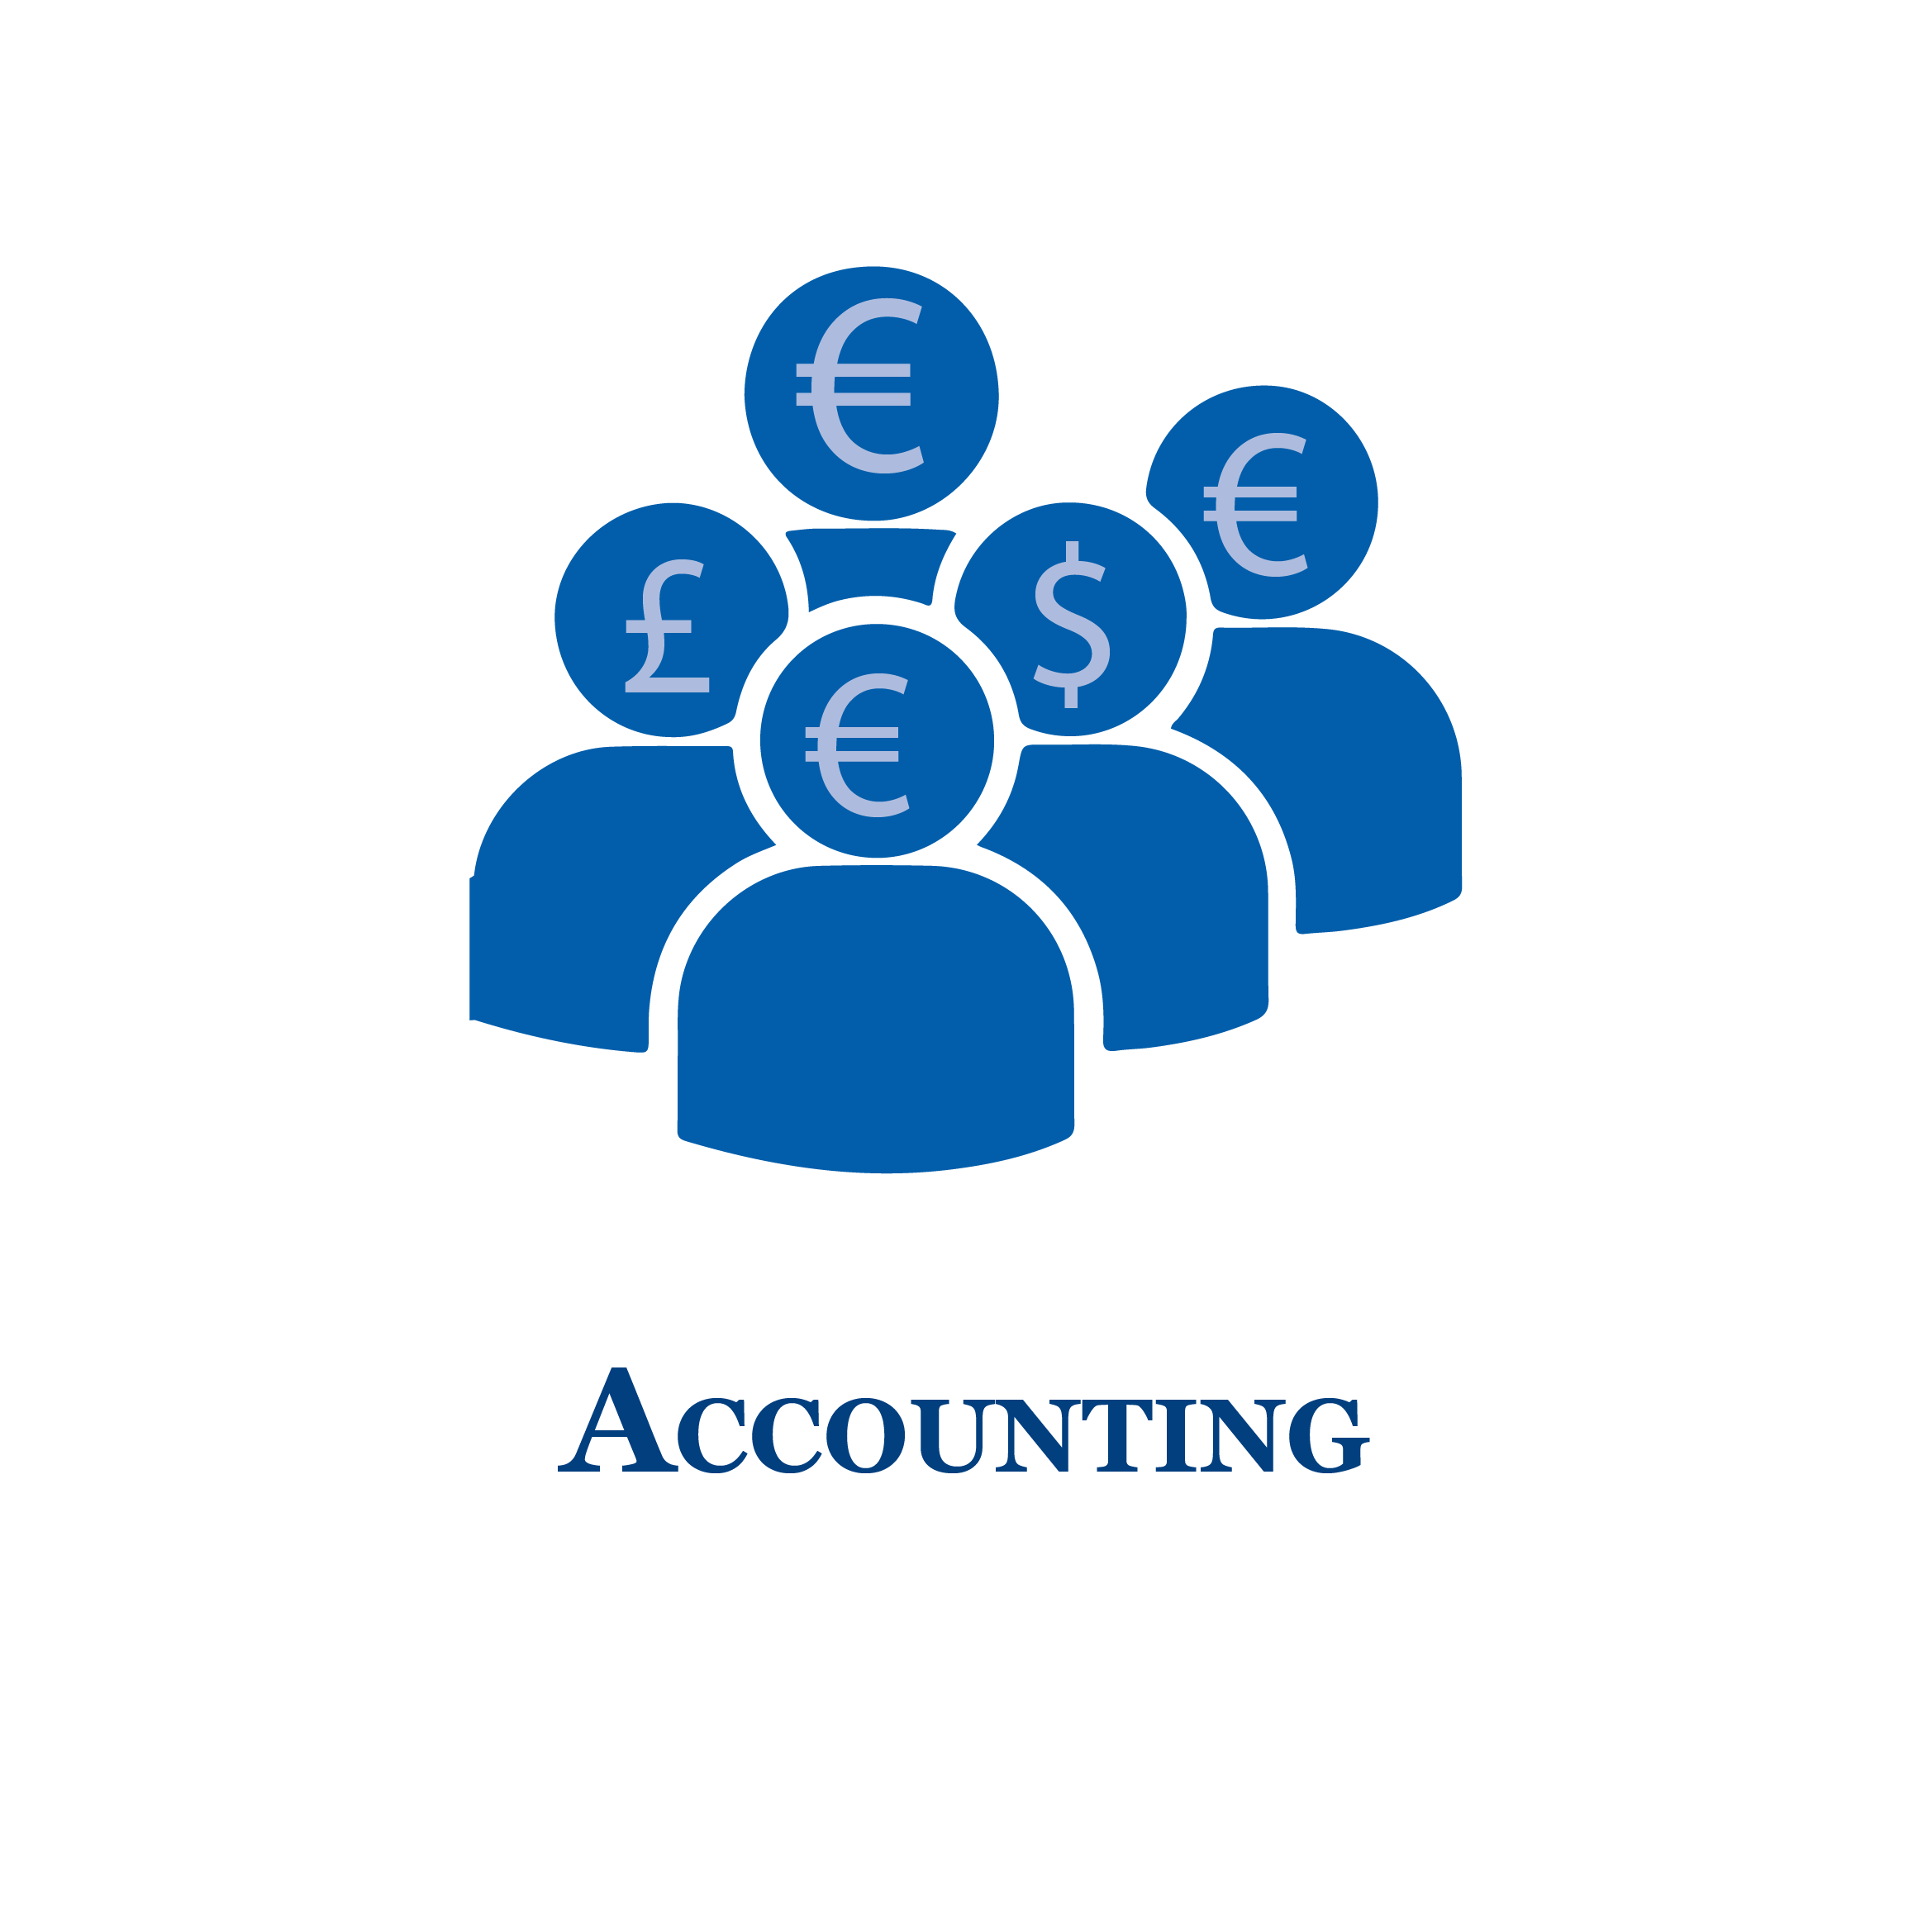 ACCOUNTINGwhite